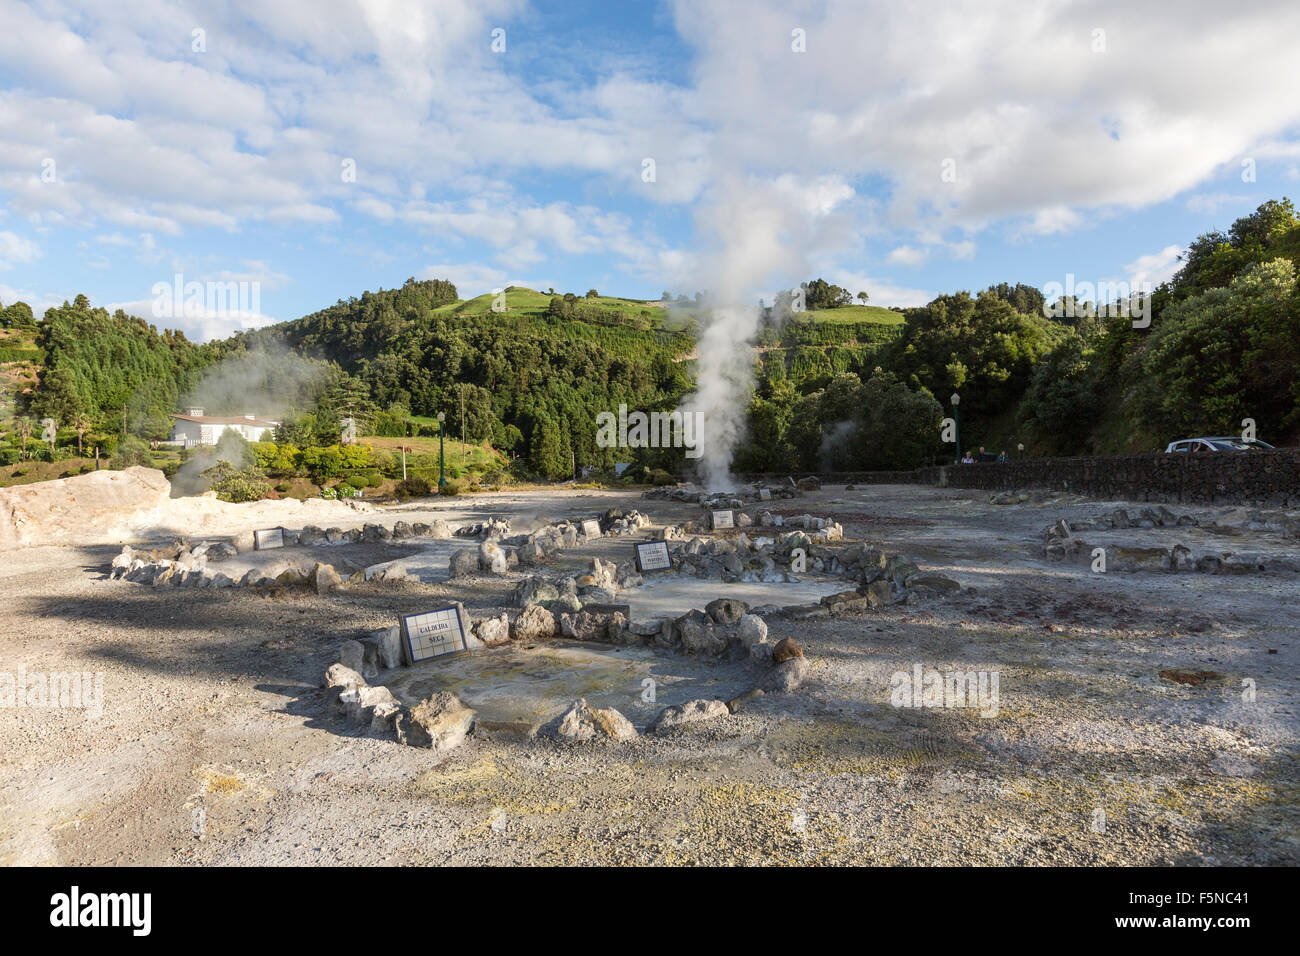 Many geysers, hot-springs and fumaroles scattered in the central village of Furnas, São Miguel, Azores - Stock Image